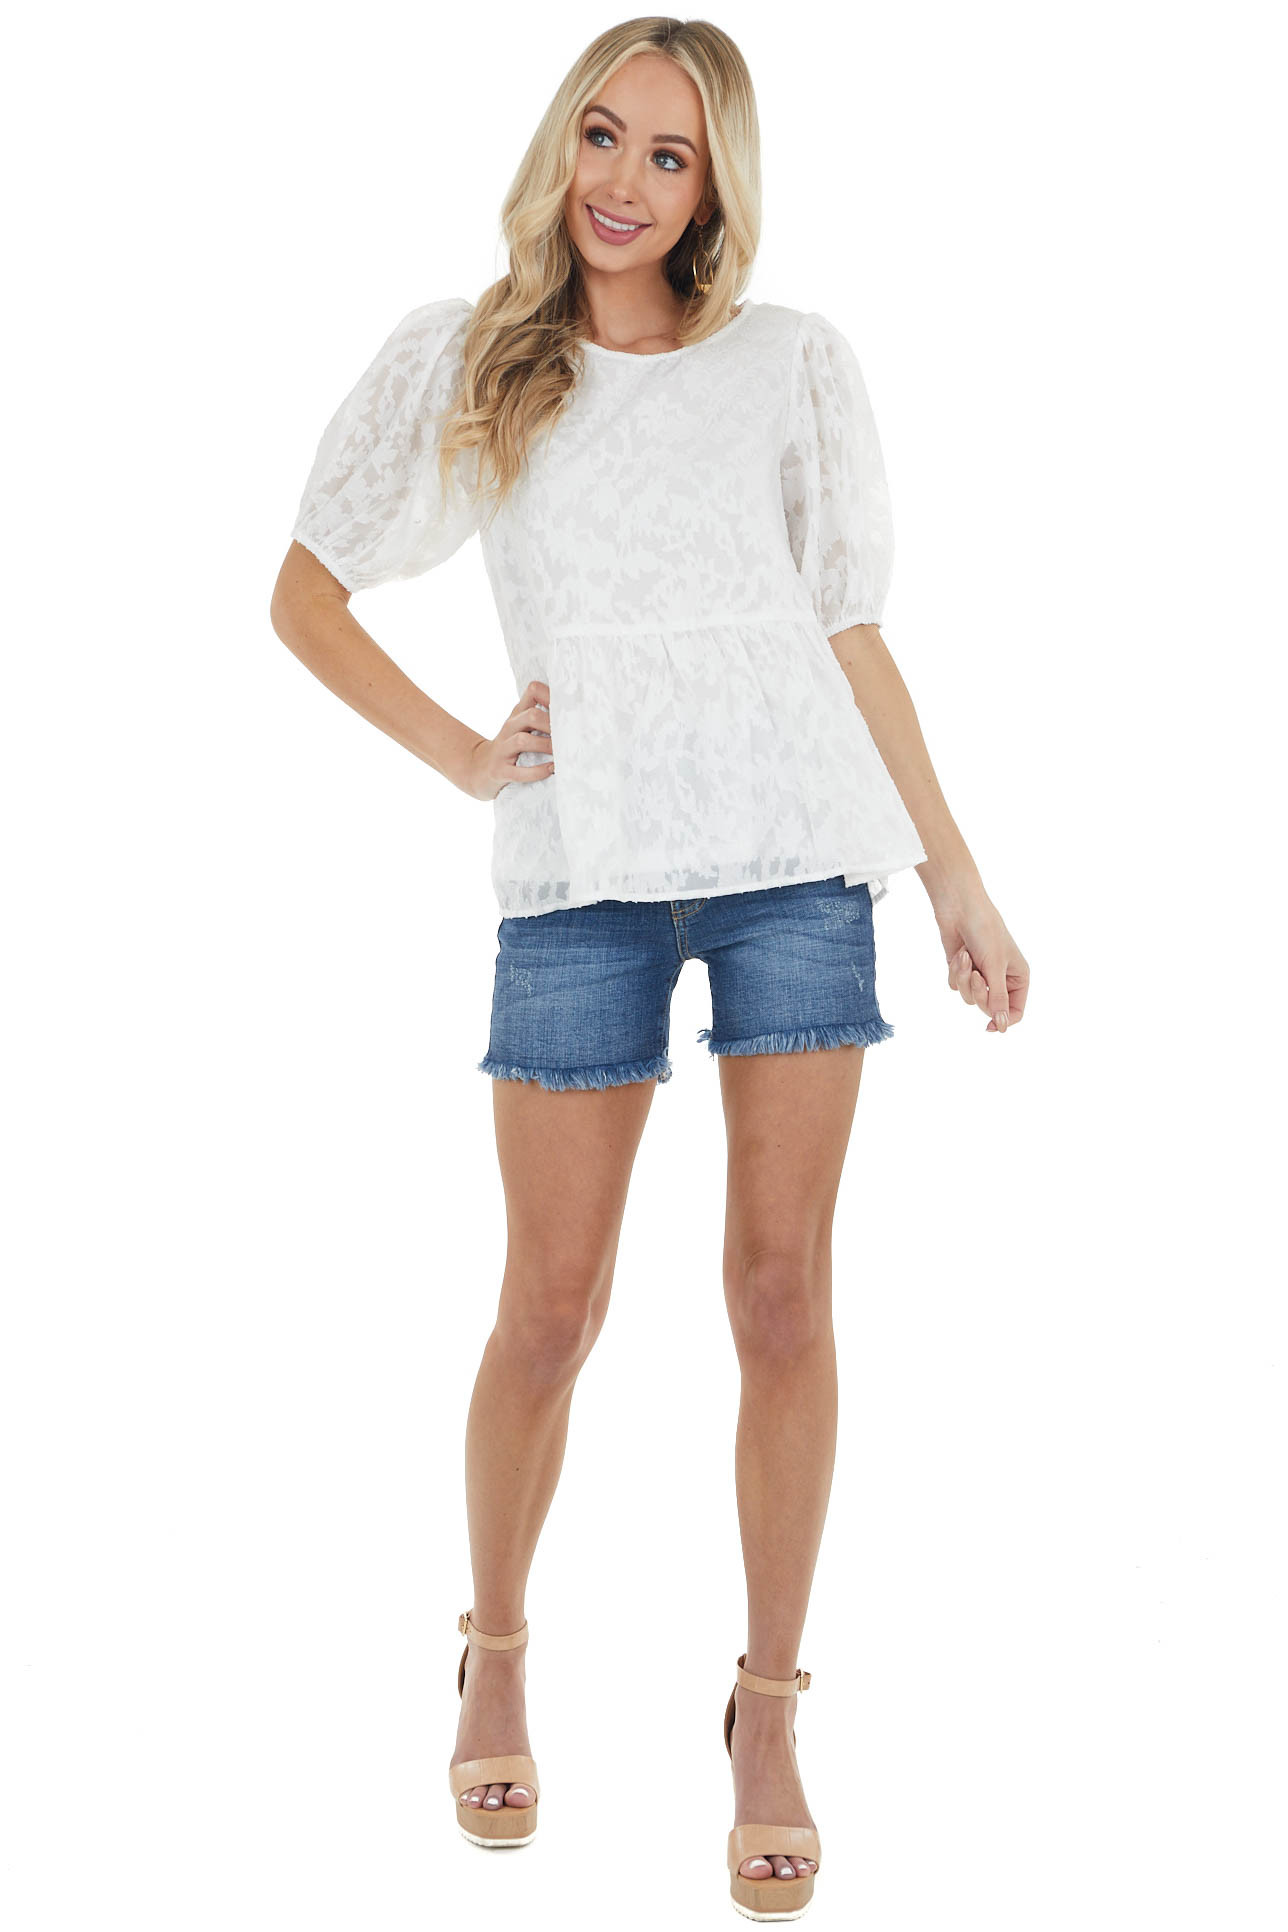 Off White Floral Lace Peplum Top with Short Puff Sleeves